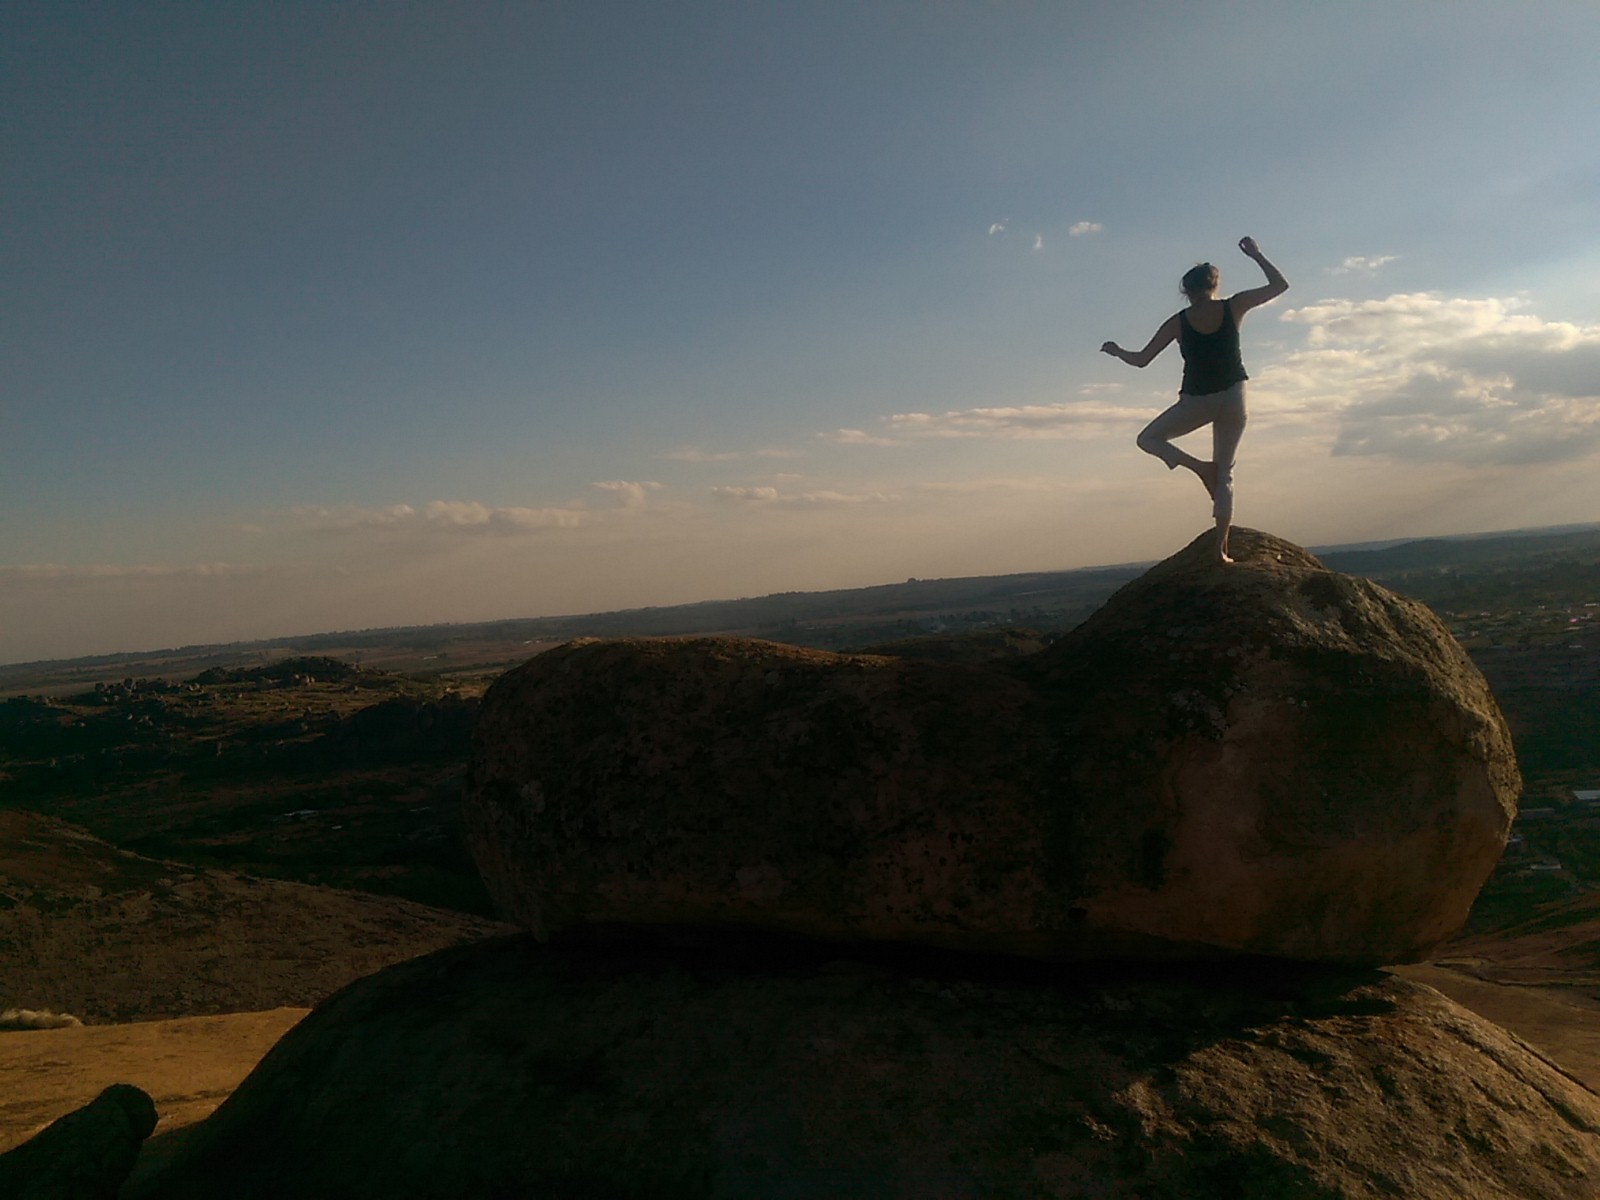 The silhouette of a woman balancing on a large rock with an epic view